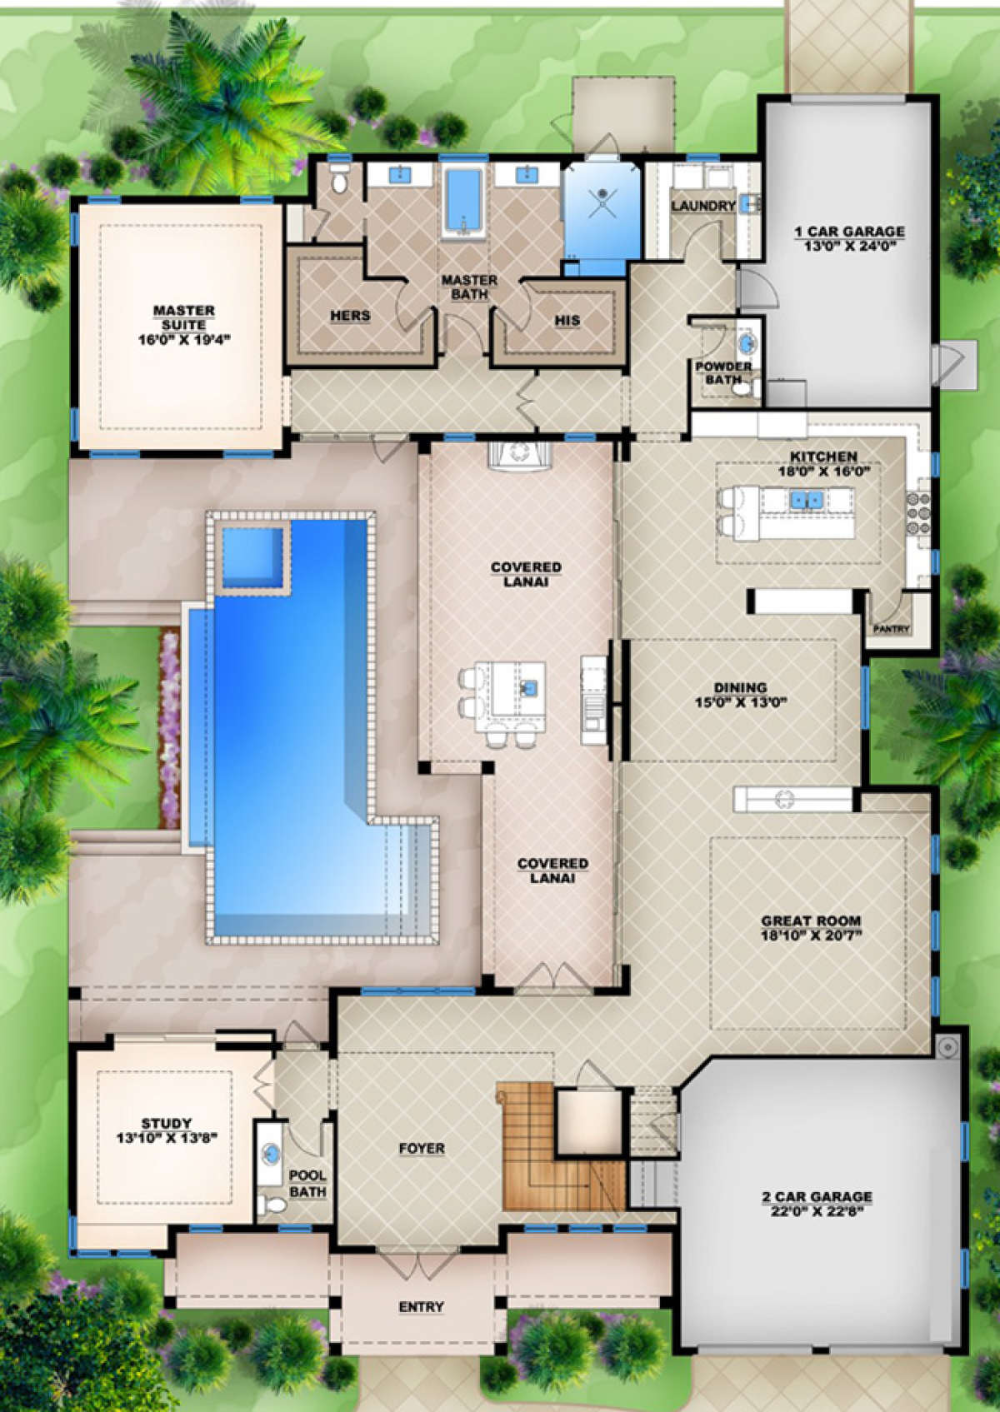 House Plan 207 00015 Contemporary Plan 4 417 Square Feet 4 Bedrooms 5 Bathrooms Pool House Plans Sims House Design Contemporary House Plans